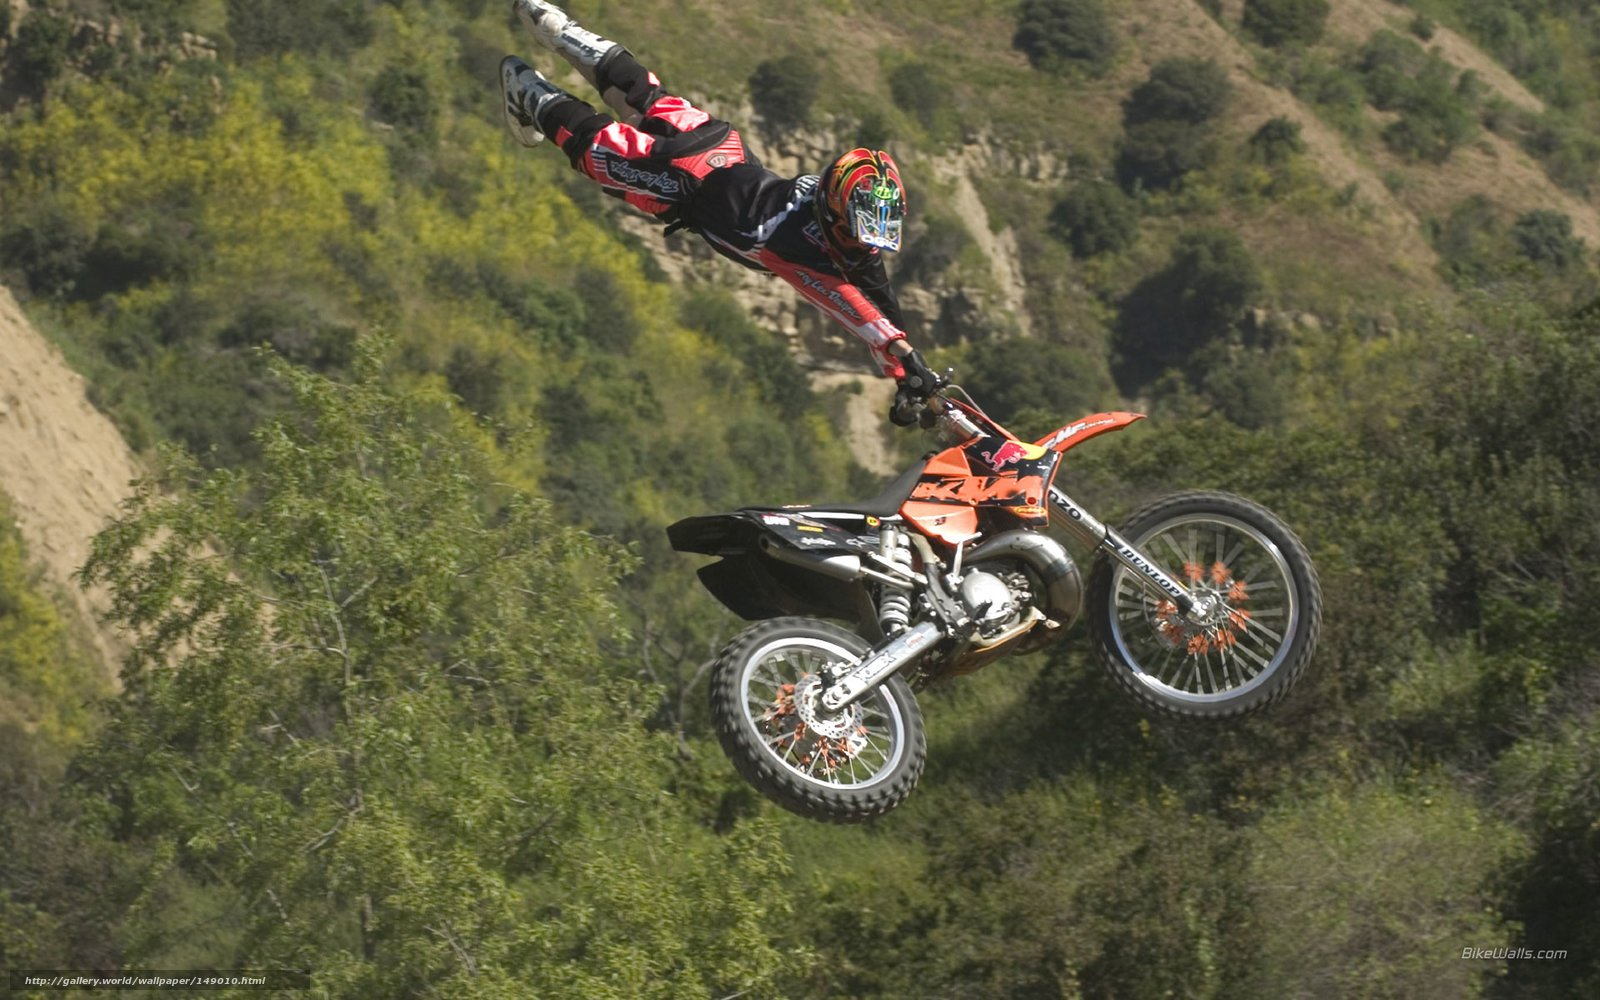 Download wallpaper KTM Motocross SX 125 SX 125 SX 2006 1600x1000